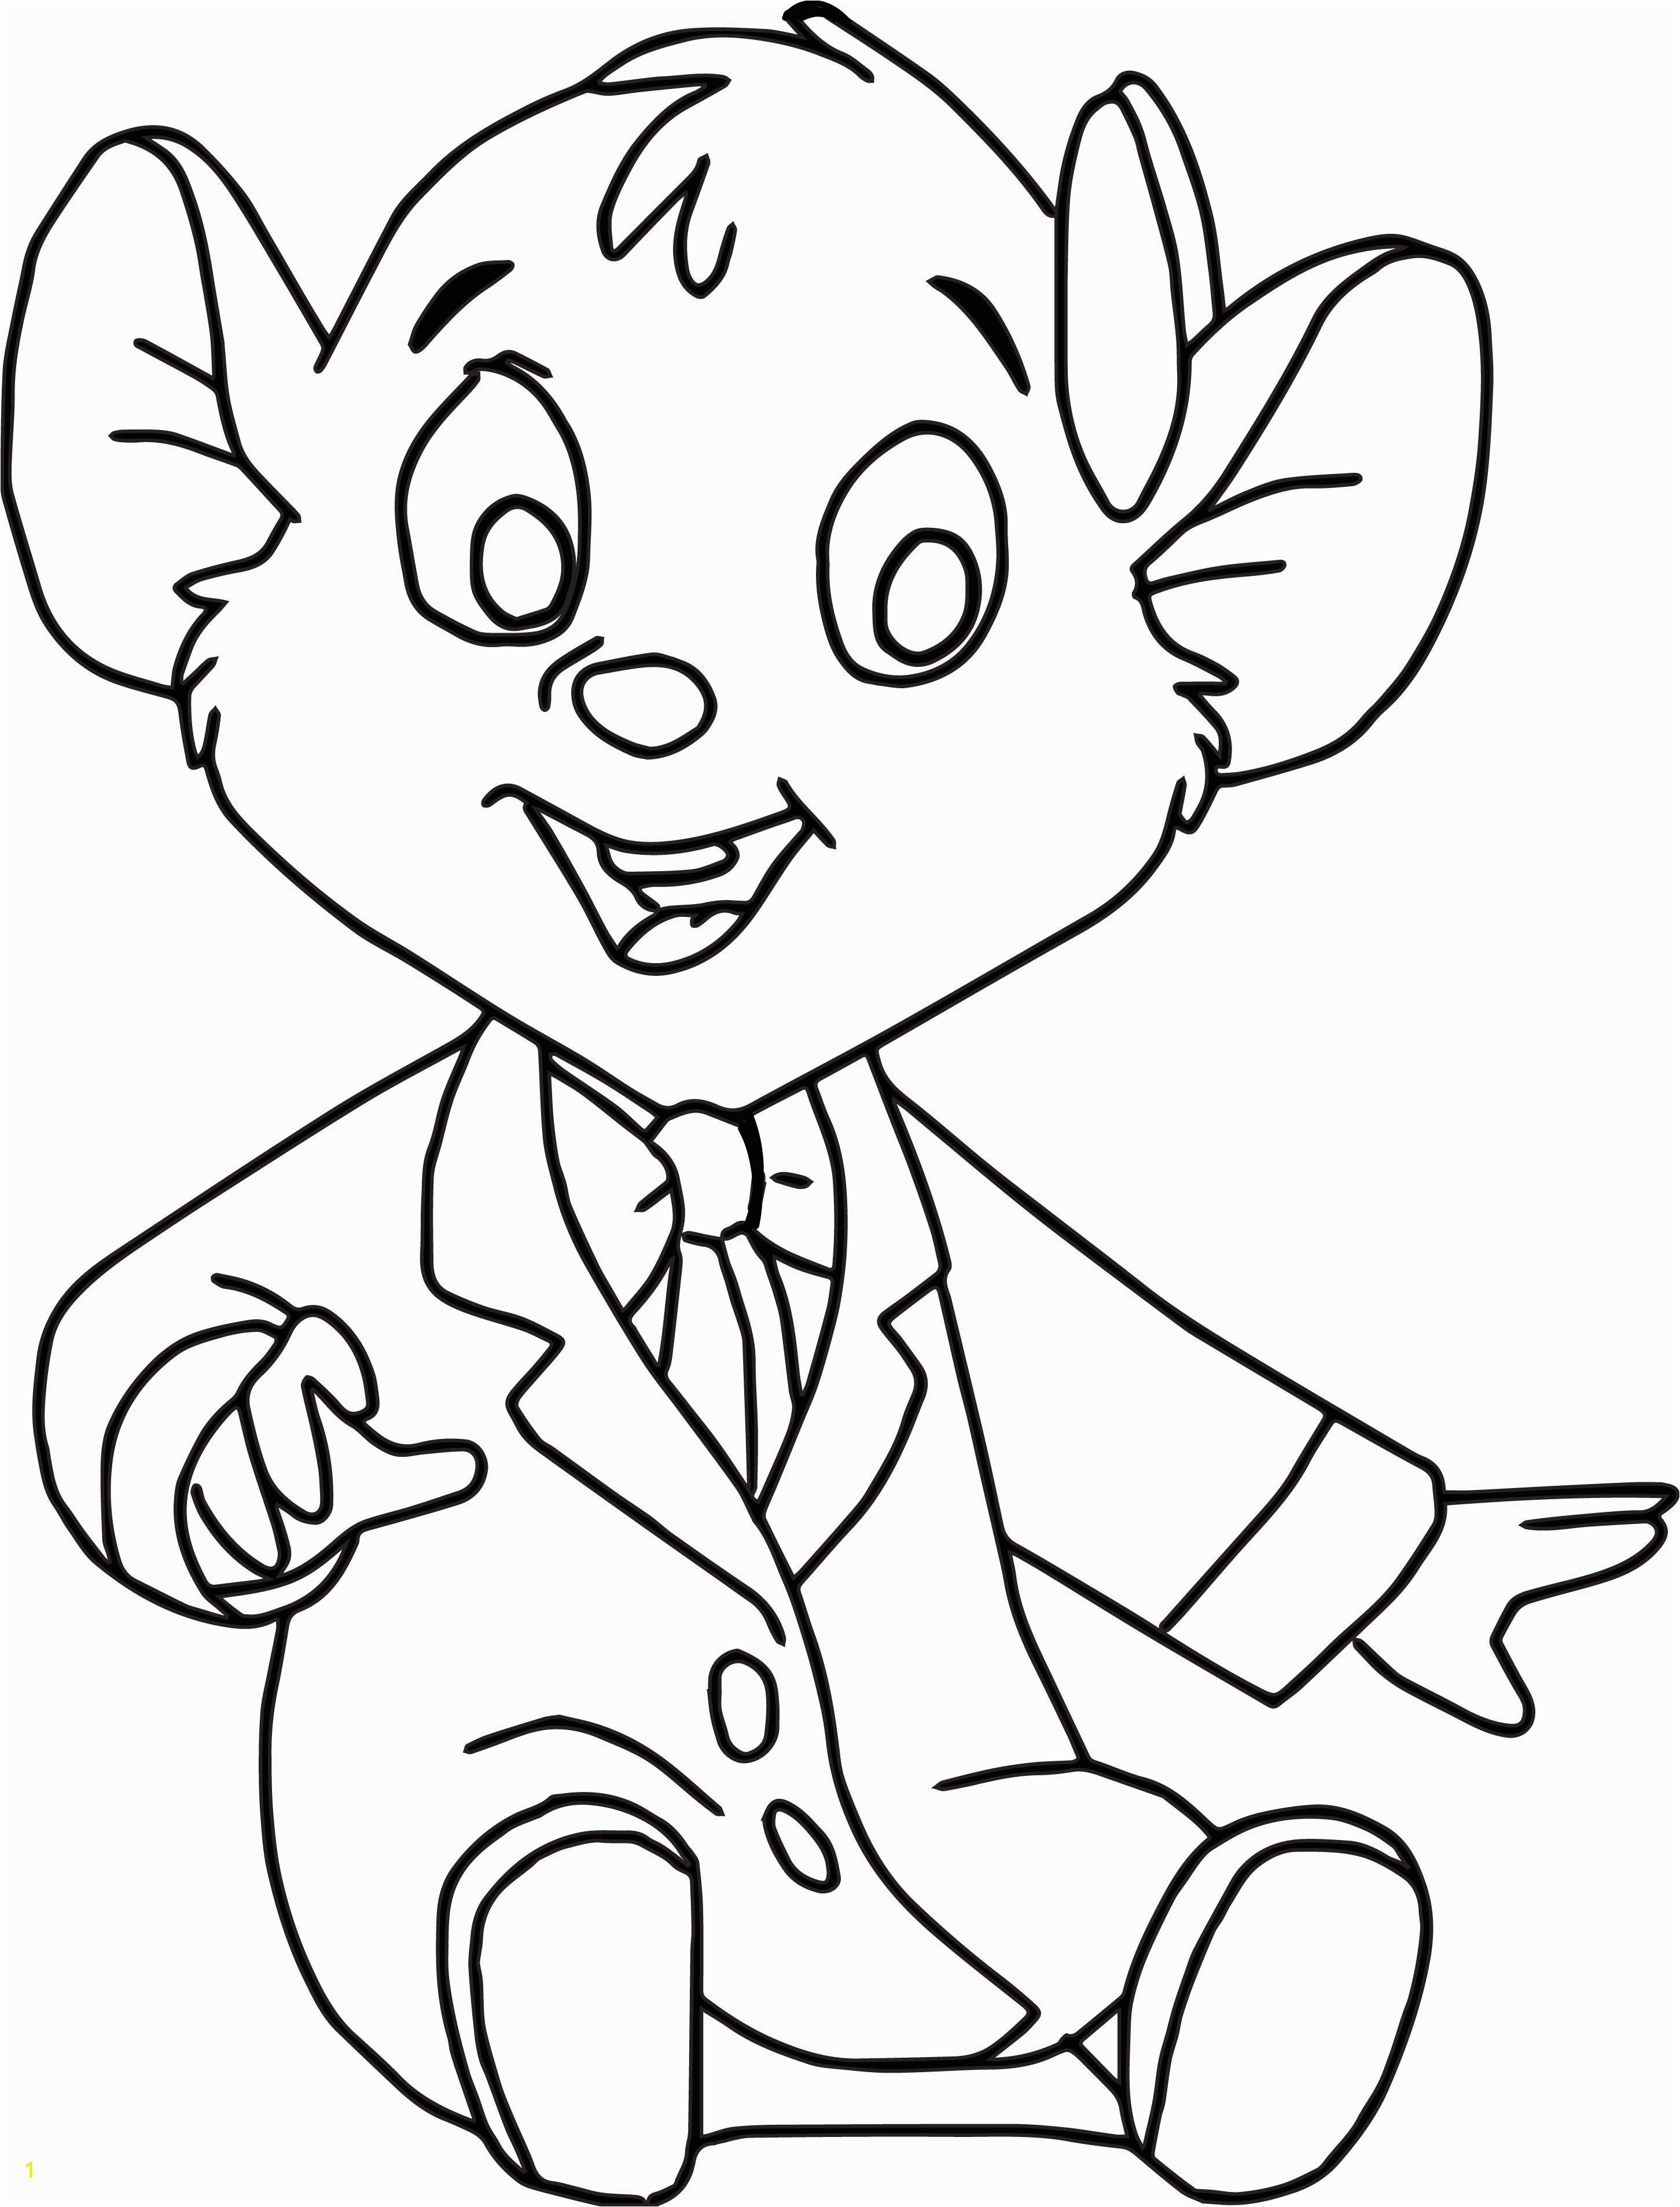 Basil Coloring Page the Great Mouse Detective Oli Cartoon Coloring Pages